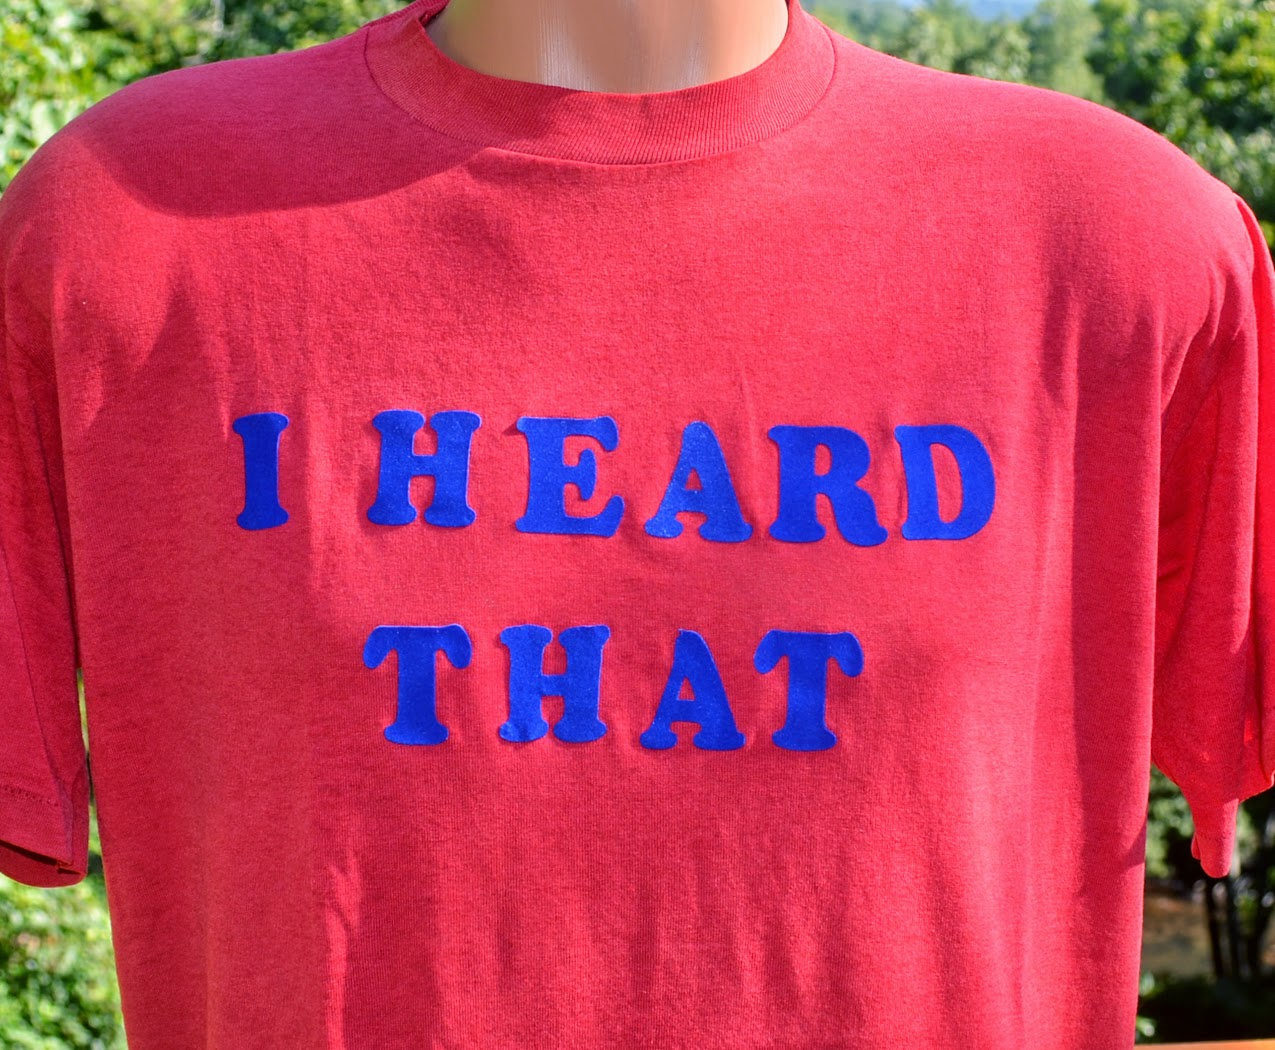 https://www.etsy.com/listing/202229618/80s-vintage-t-shirt-i-heard-that-soft?ref=shop_home_active_2